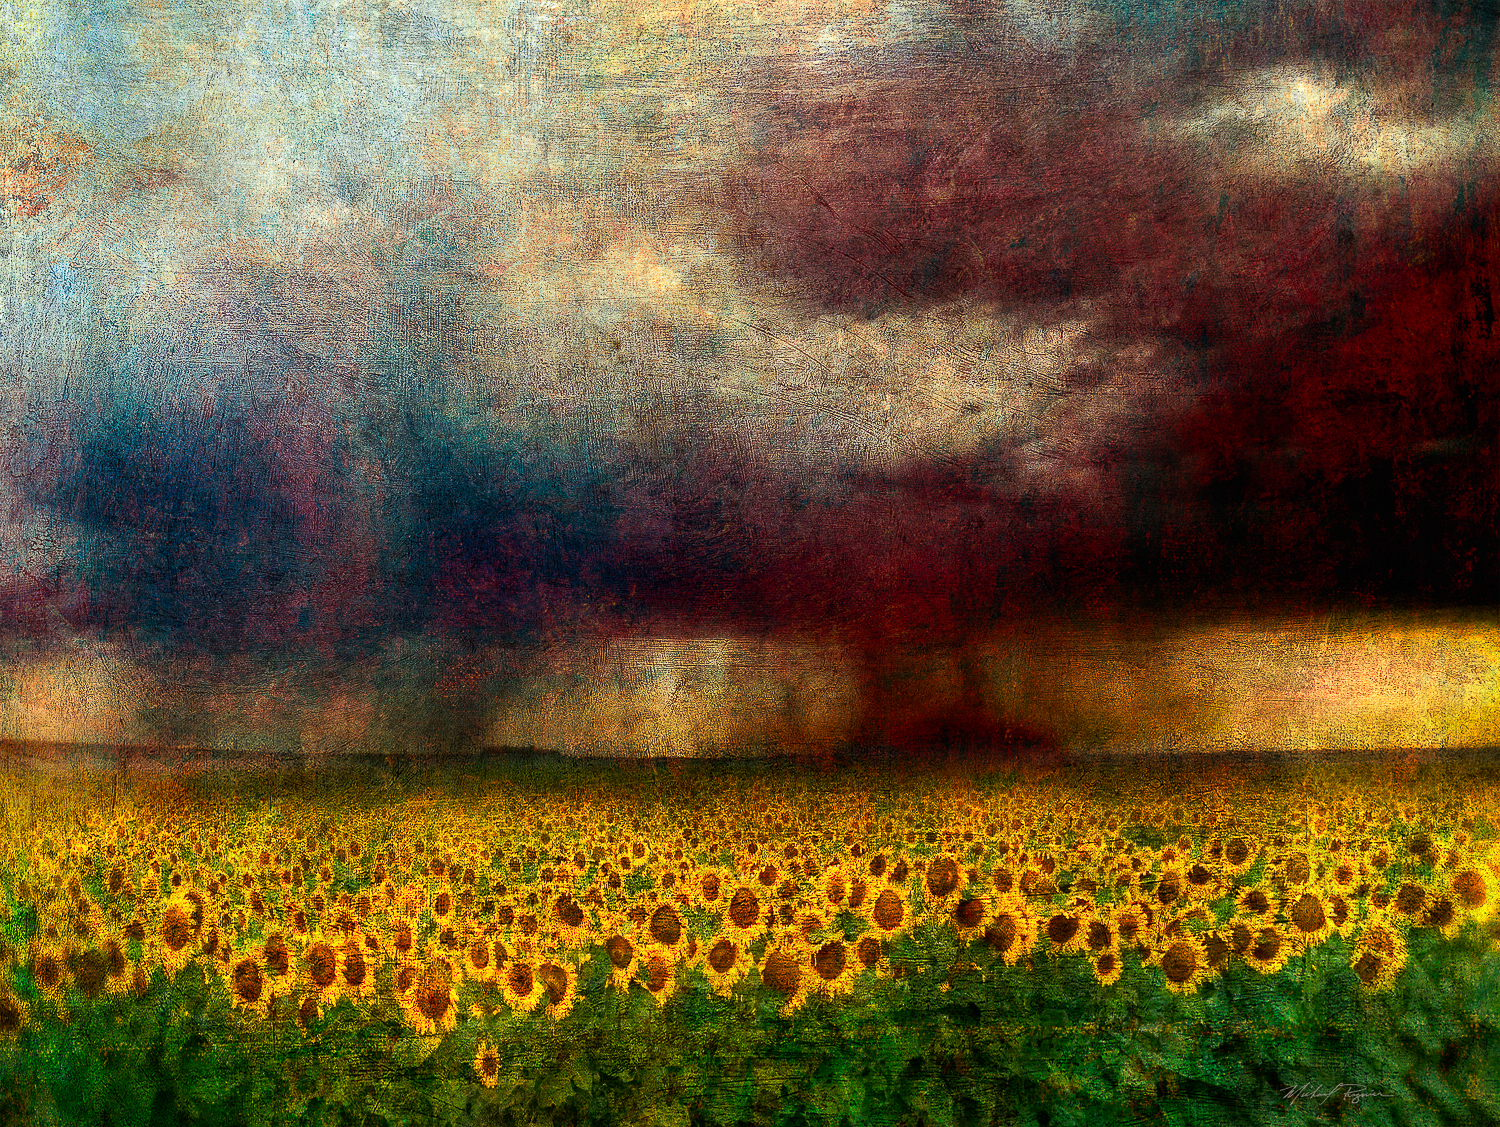 sunflower_storm_36x48.jpg